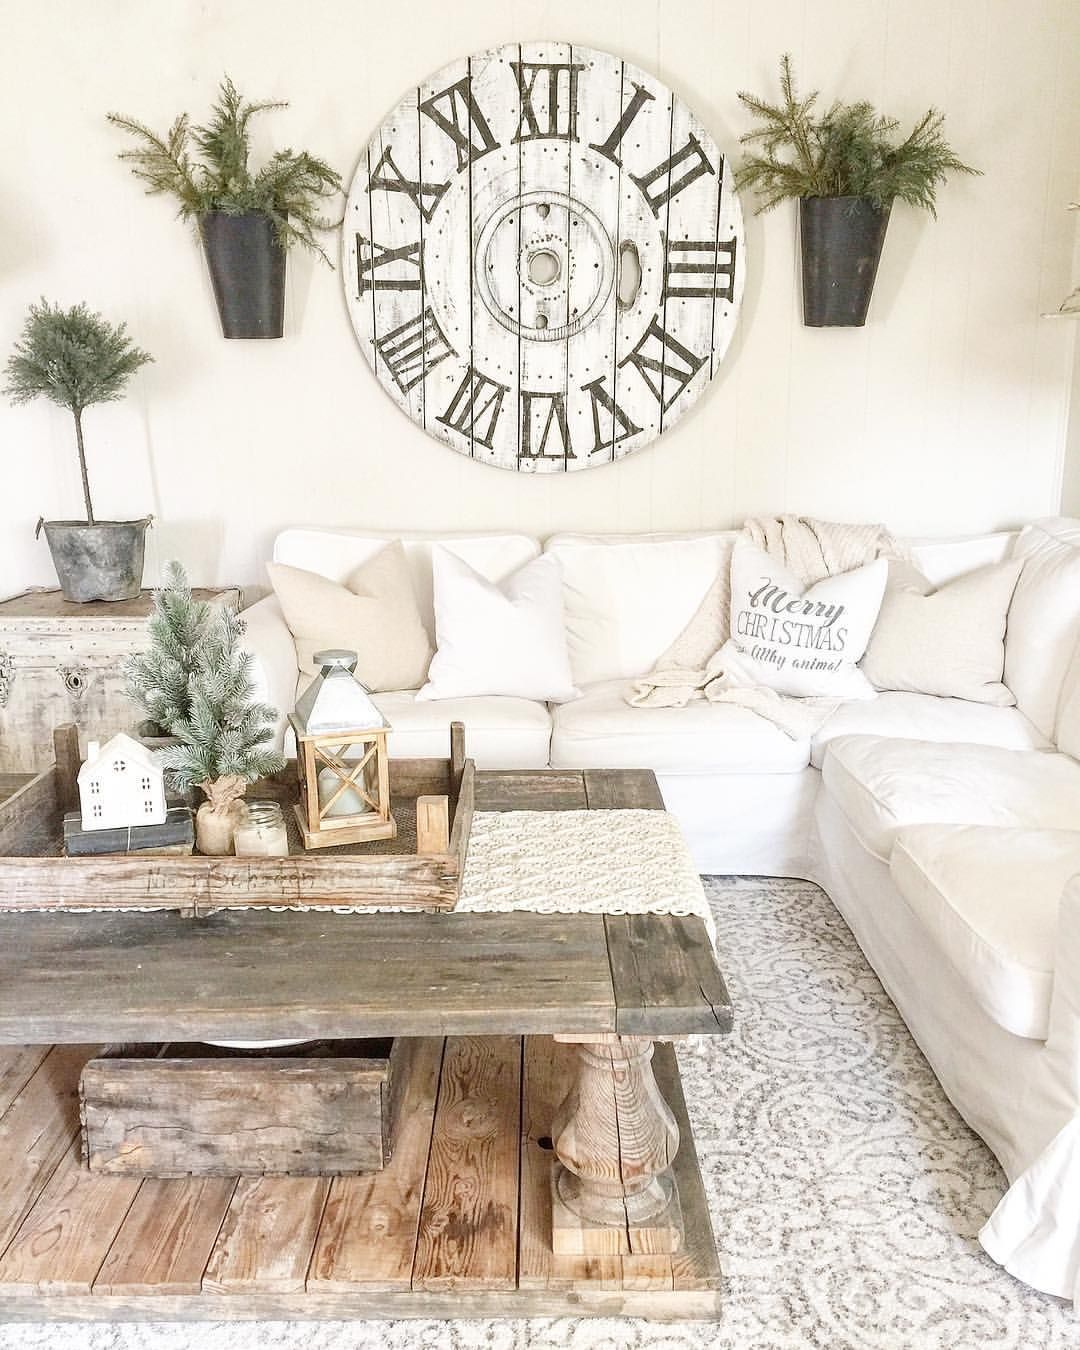 Pin by Suzette Kitsos on Dream house | Pinterest | Living rooms ...